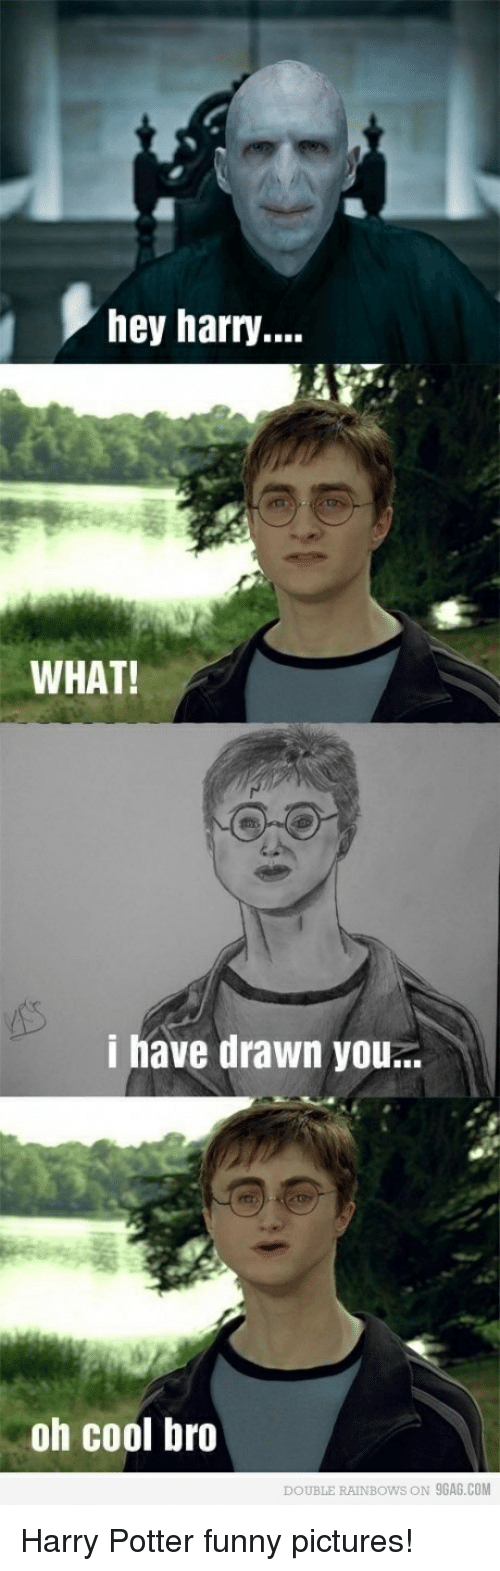 9gag, Funny, and Harry Potter: hey harry...  WHAT!  i have drawn you..  oh cool bro  DOUBLE RAINBOWS ON 9GAG.COM Harry Potter funny pictures!